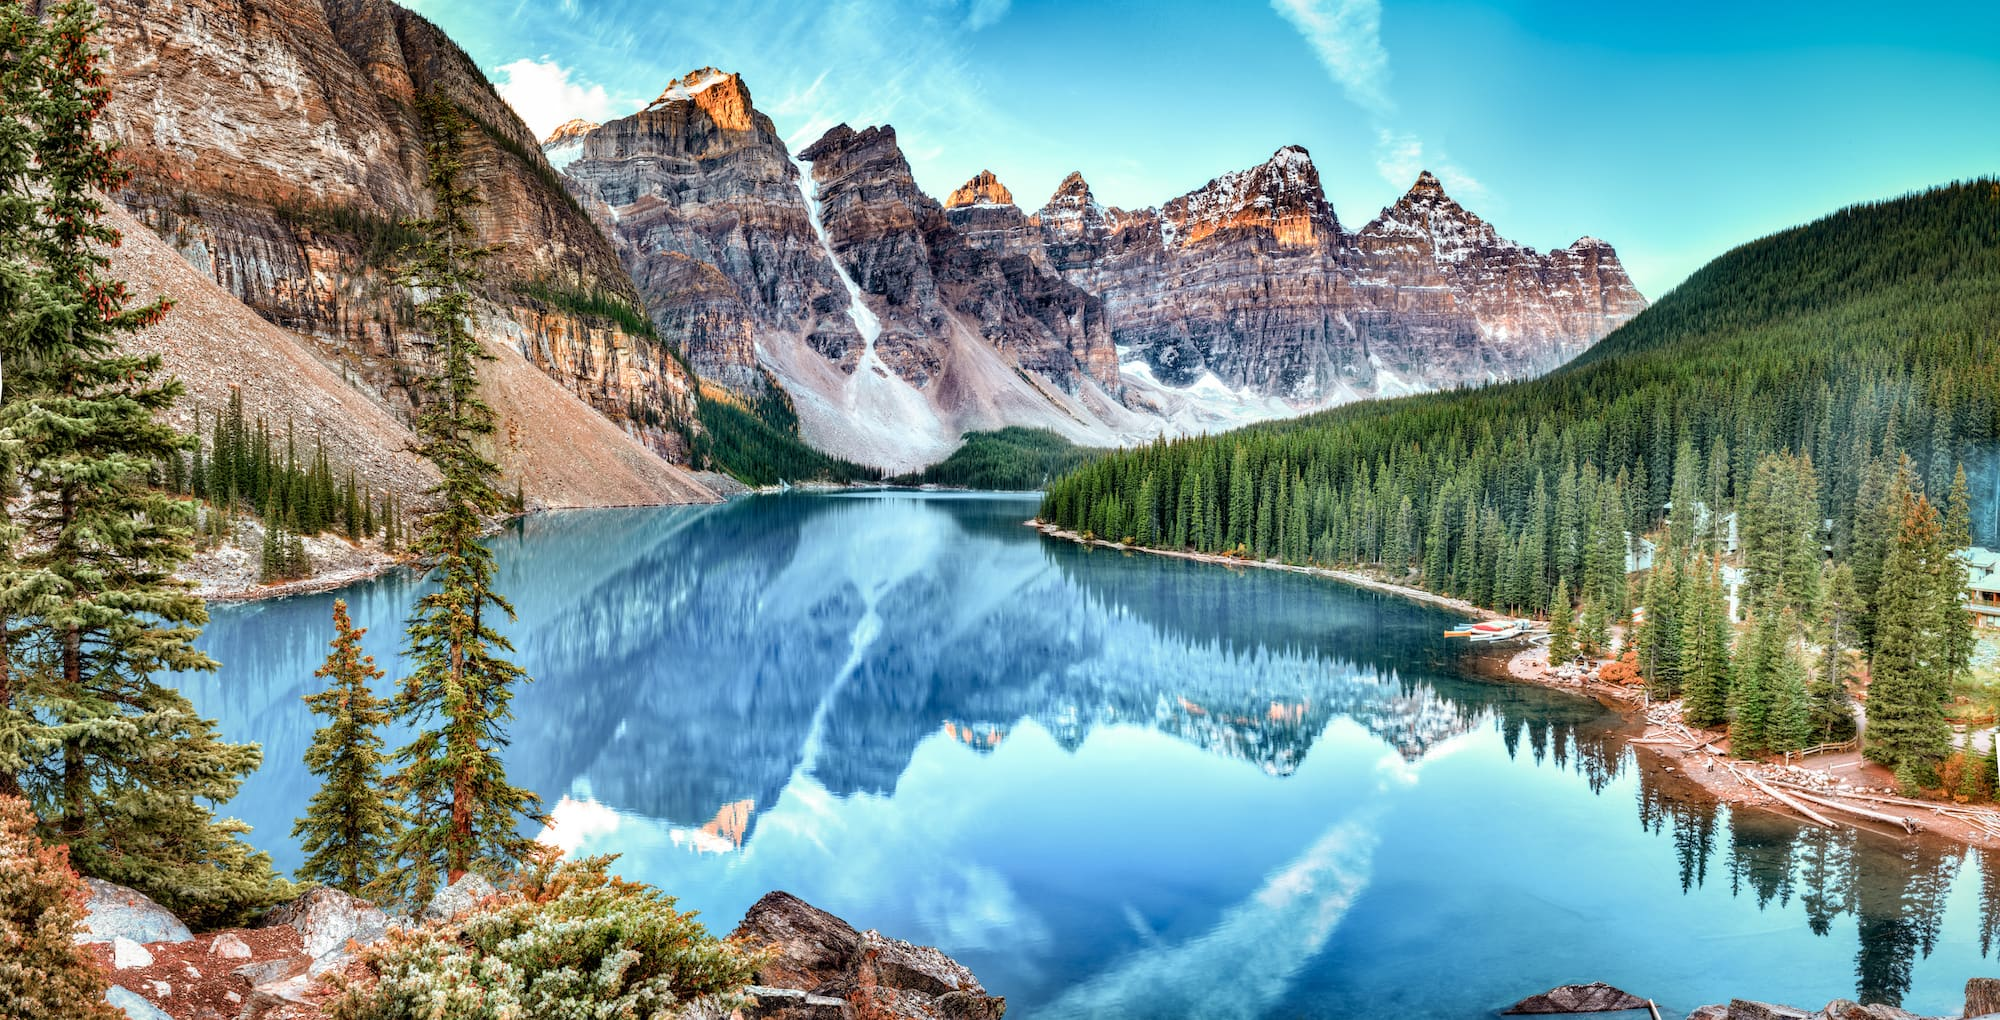 Banff and the Lake Louise area should be on every outdoor travelers adventure bucketlist